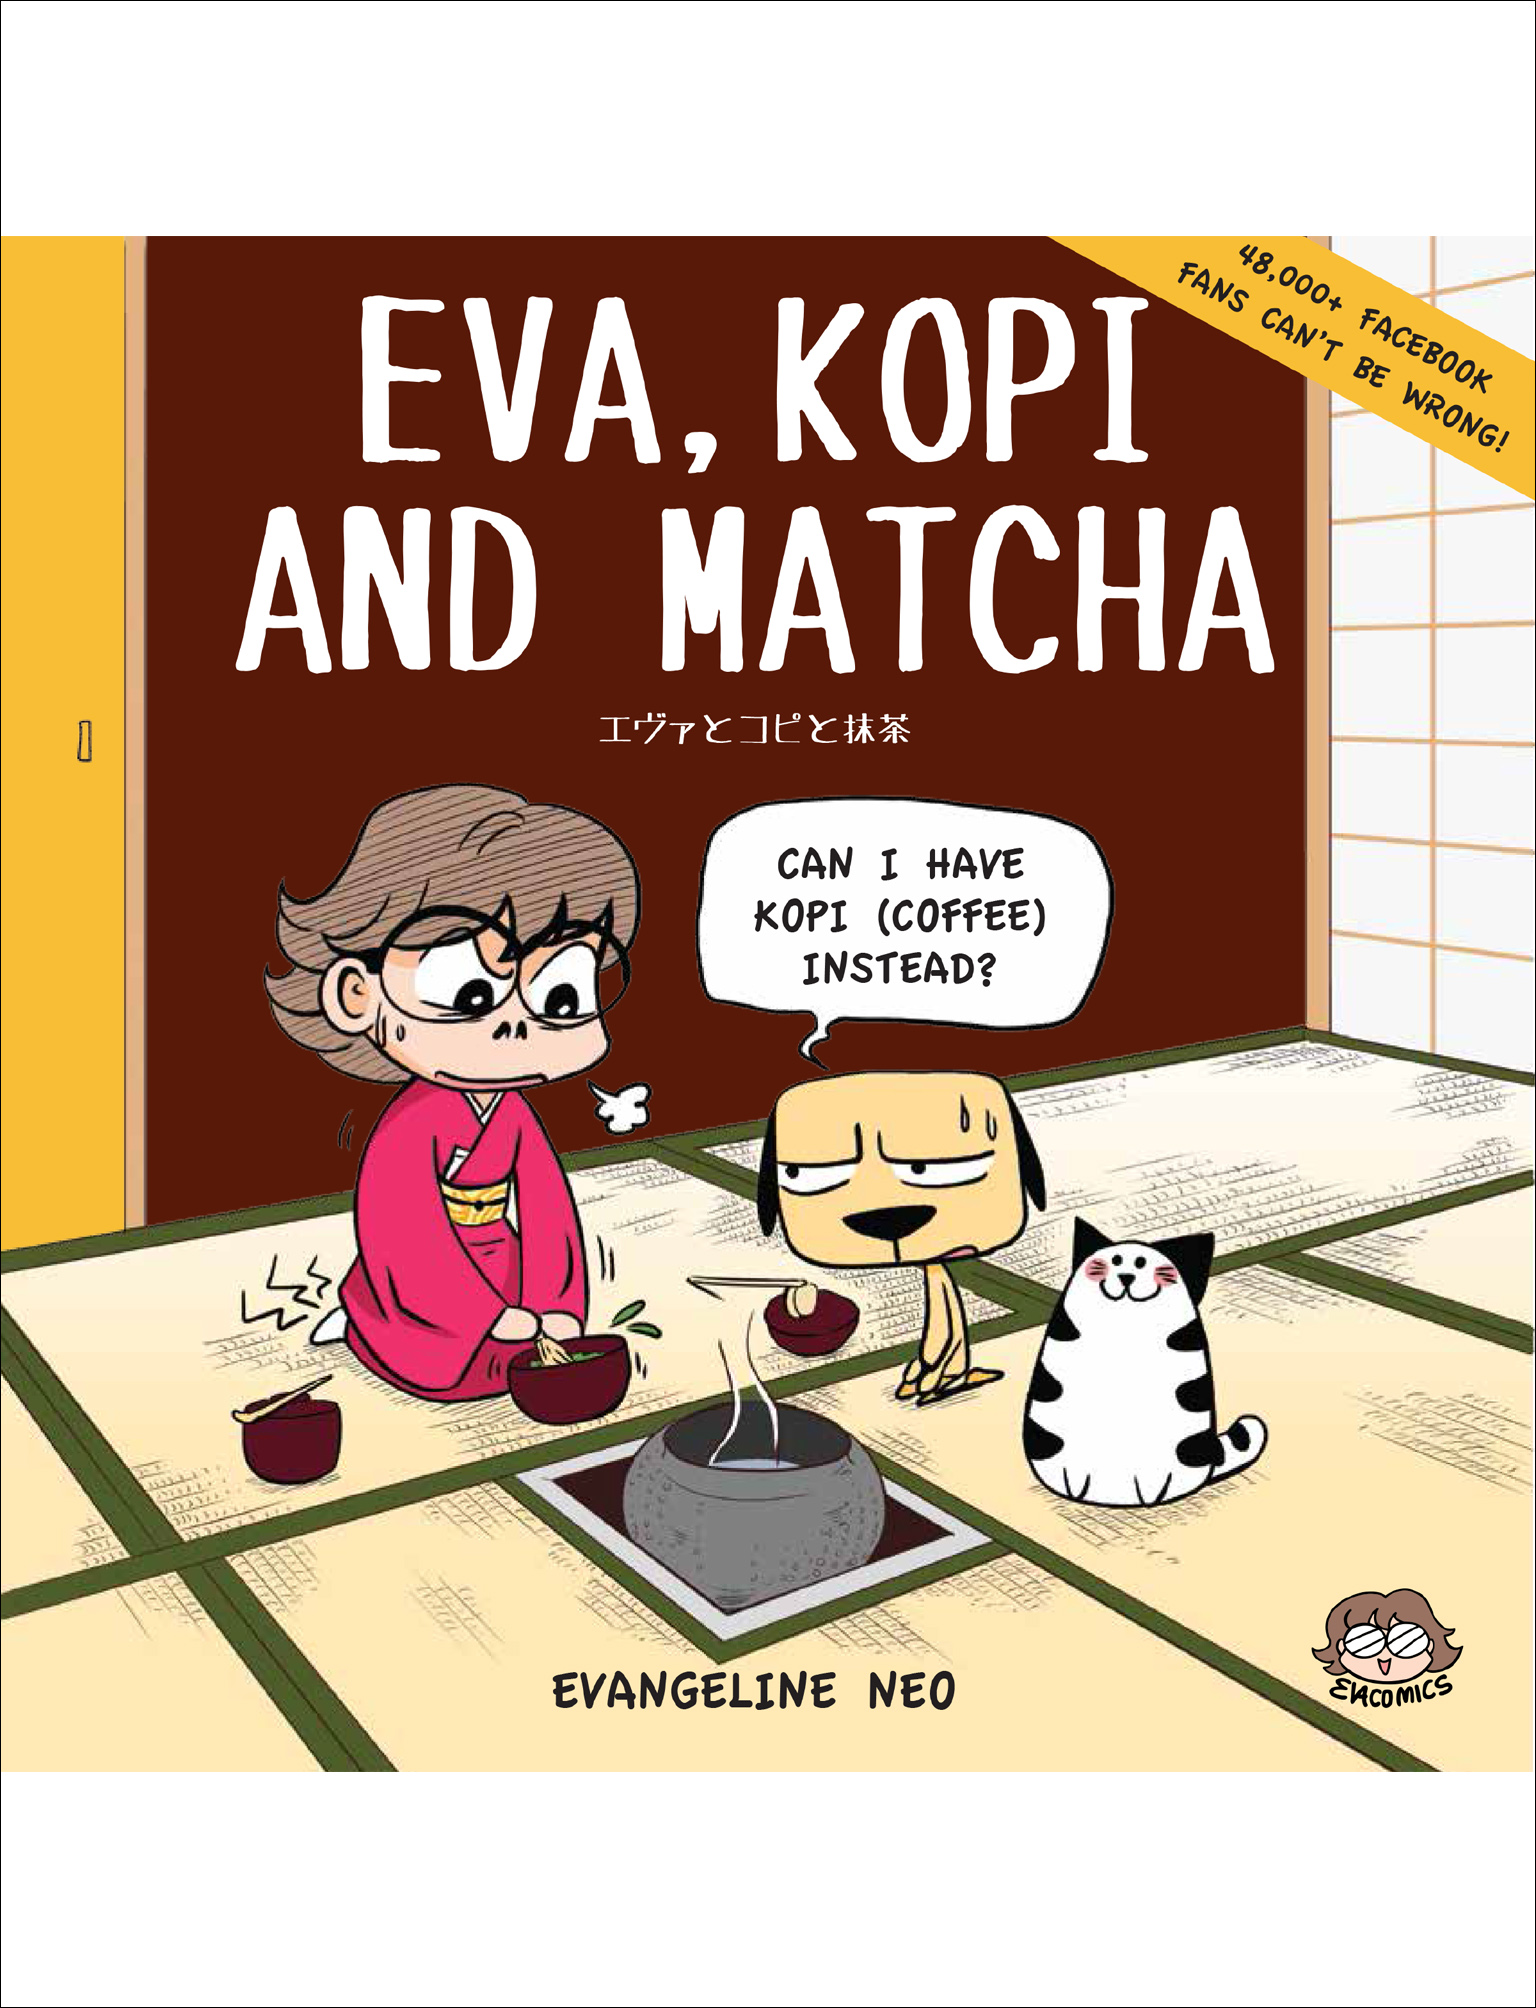 Eva, Kopi and Matcha